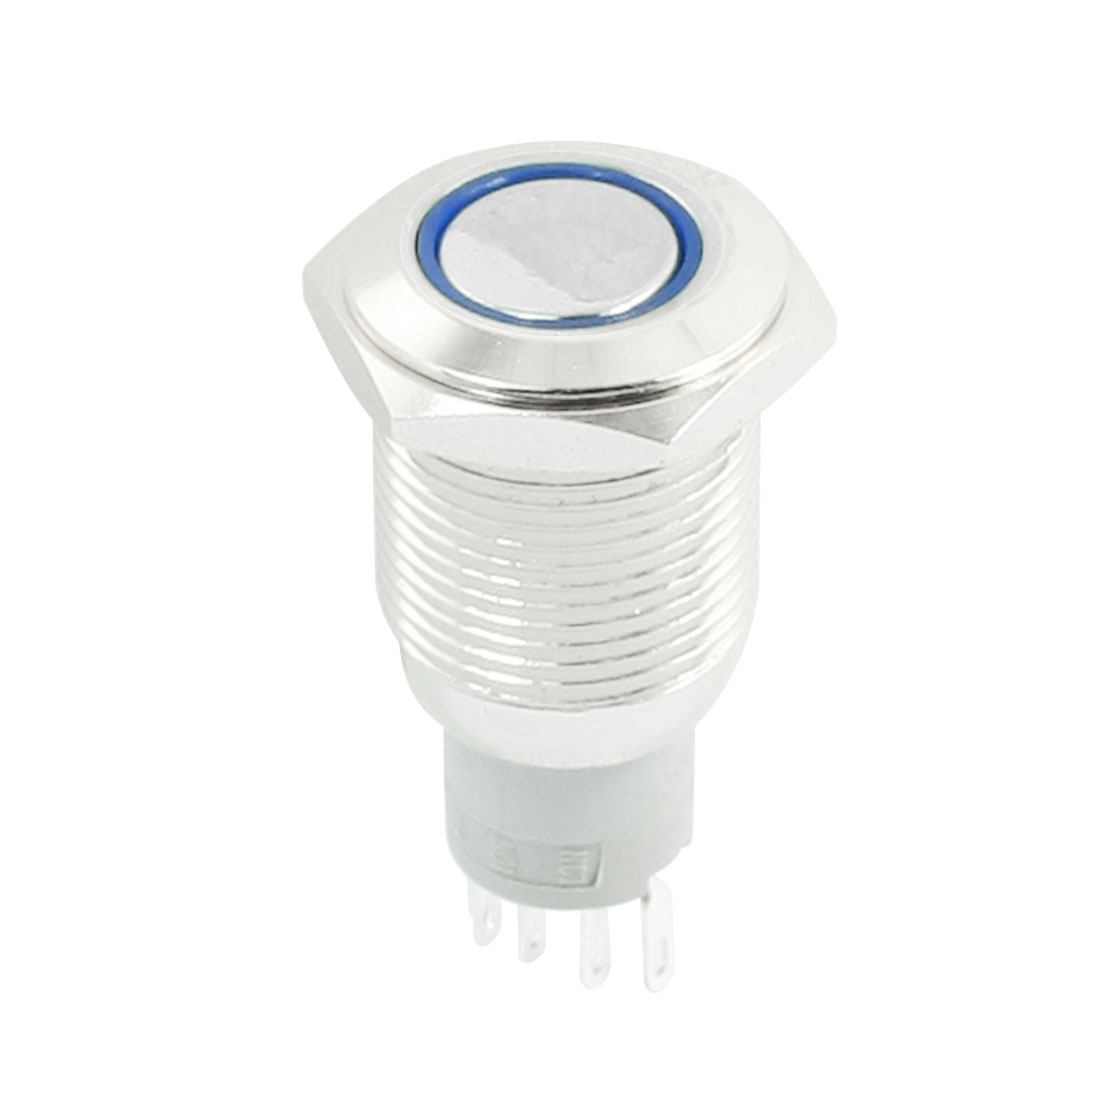 DC 12V Blue Indicative LED Light Angel Eye SPDT 1NO 1NC 5 Terminals 16mm Thread Latching Metal Push Button Switch